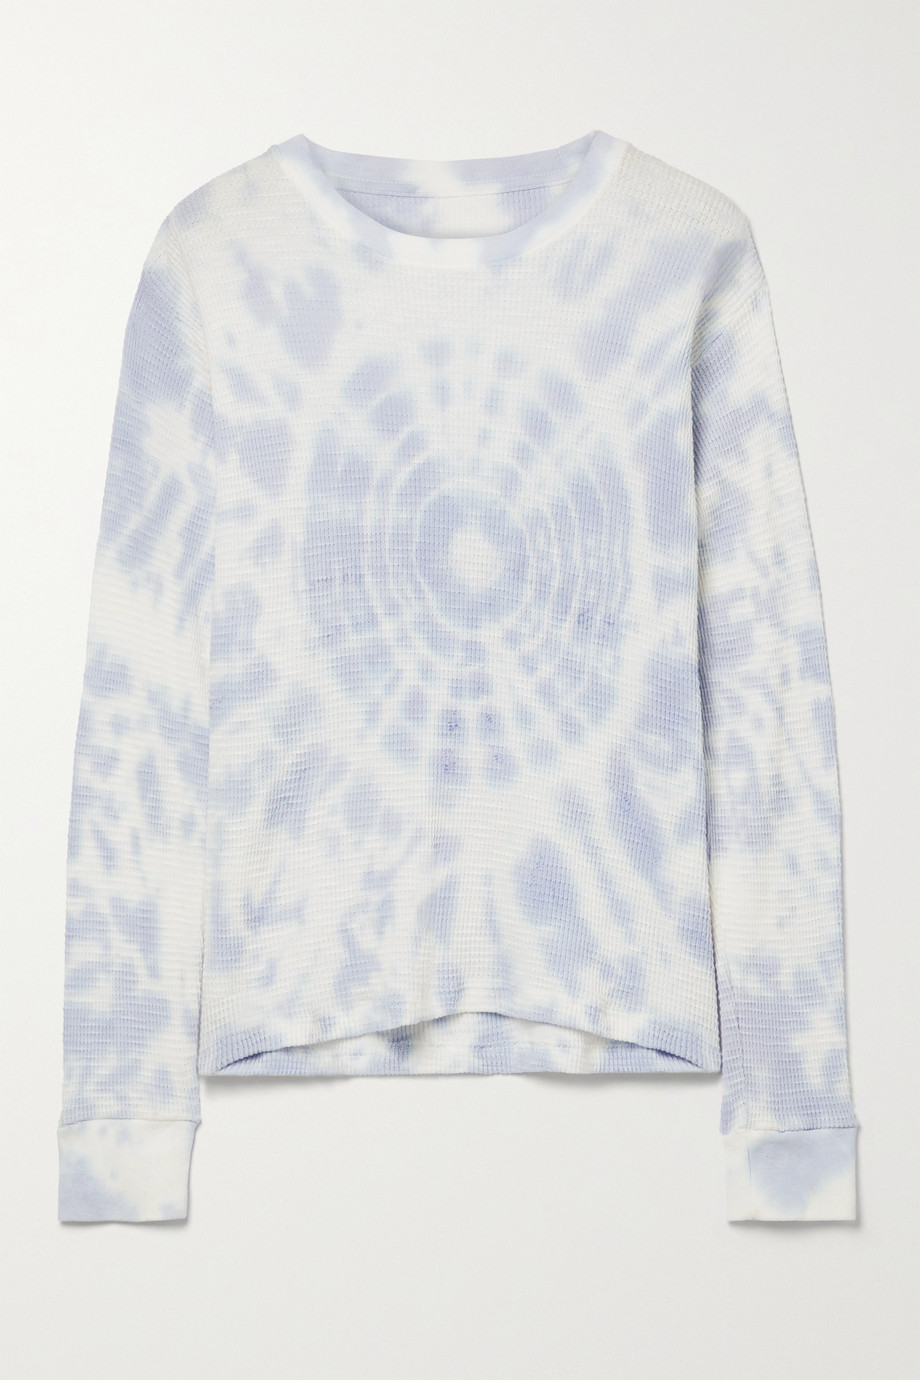 RE/DONE + Hanes tie-dyed waffle-knit cotton top